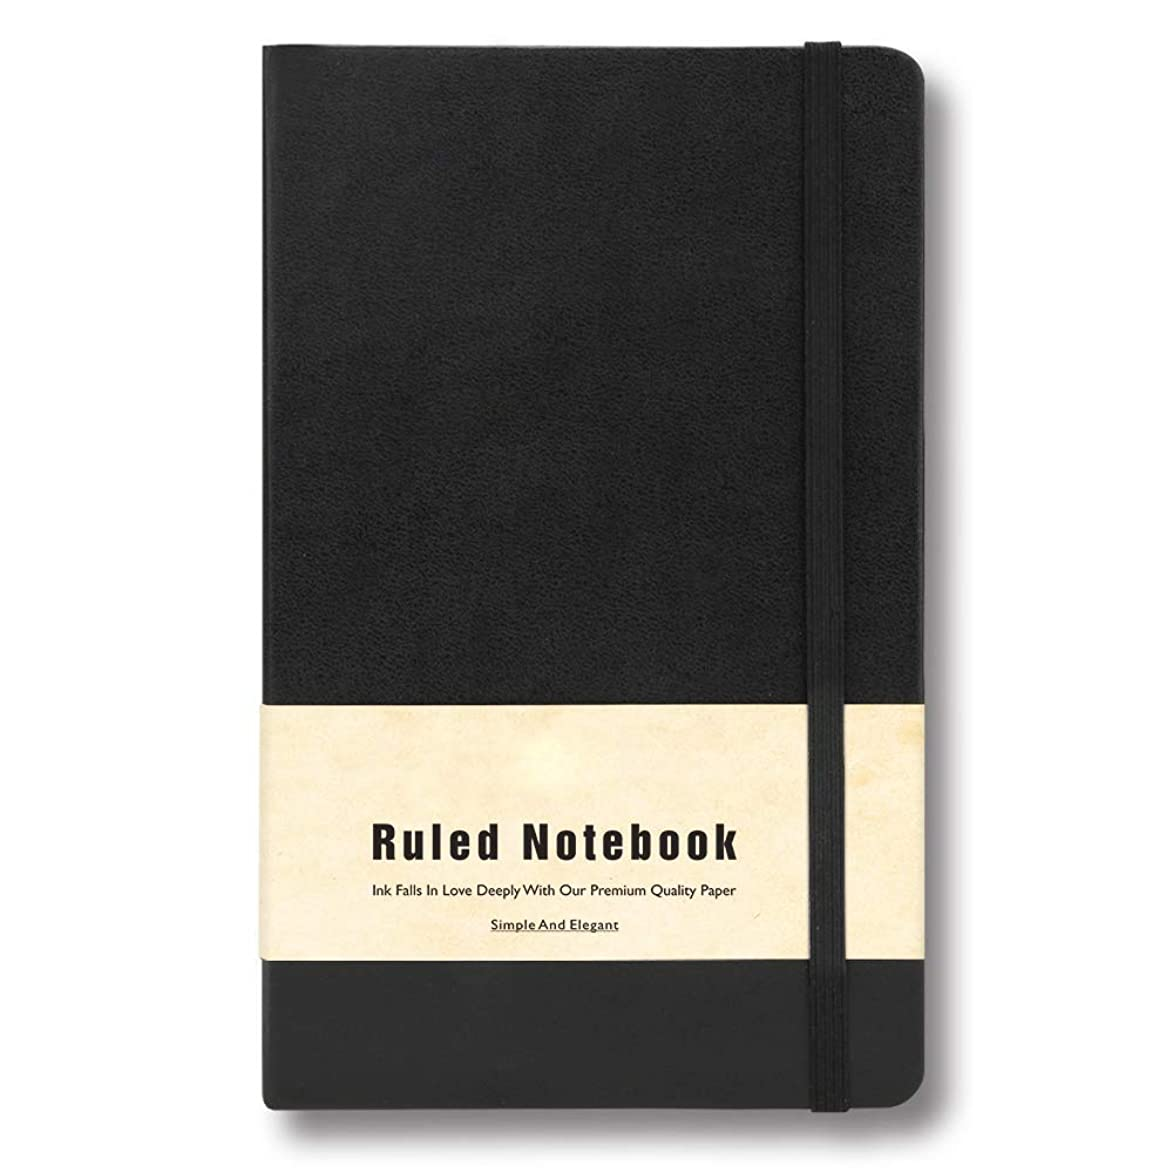 Tadamo Journal, Leather Journal for Men and Women, Ruled, Black Softcover A5 Business Notebooks, 192 Pages 80GSM 5.6 by 8.6 Inches, Professional Writing Journals with Pocket